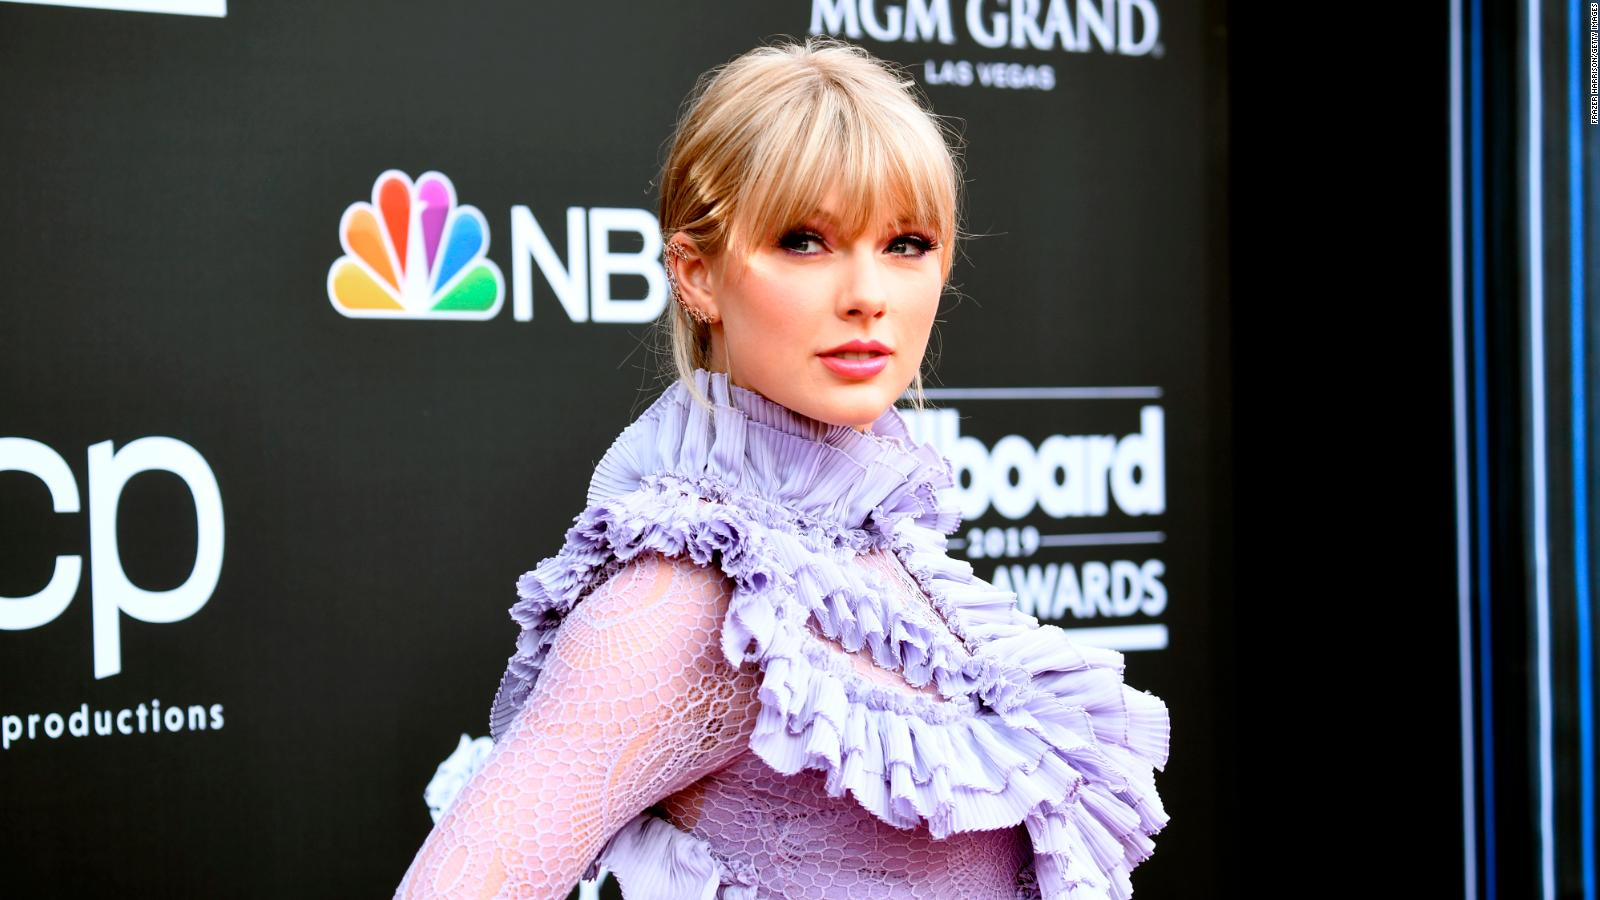 Taylor Swift S Lyrics Spark Speculation Of An Engagement To Joe Alwyn Cnn